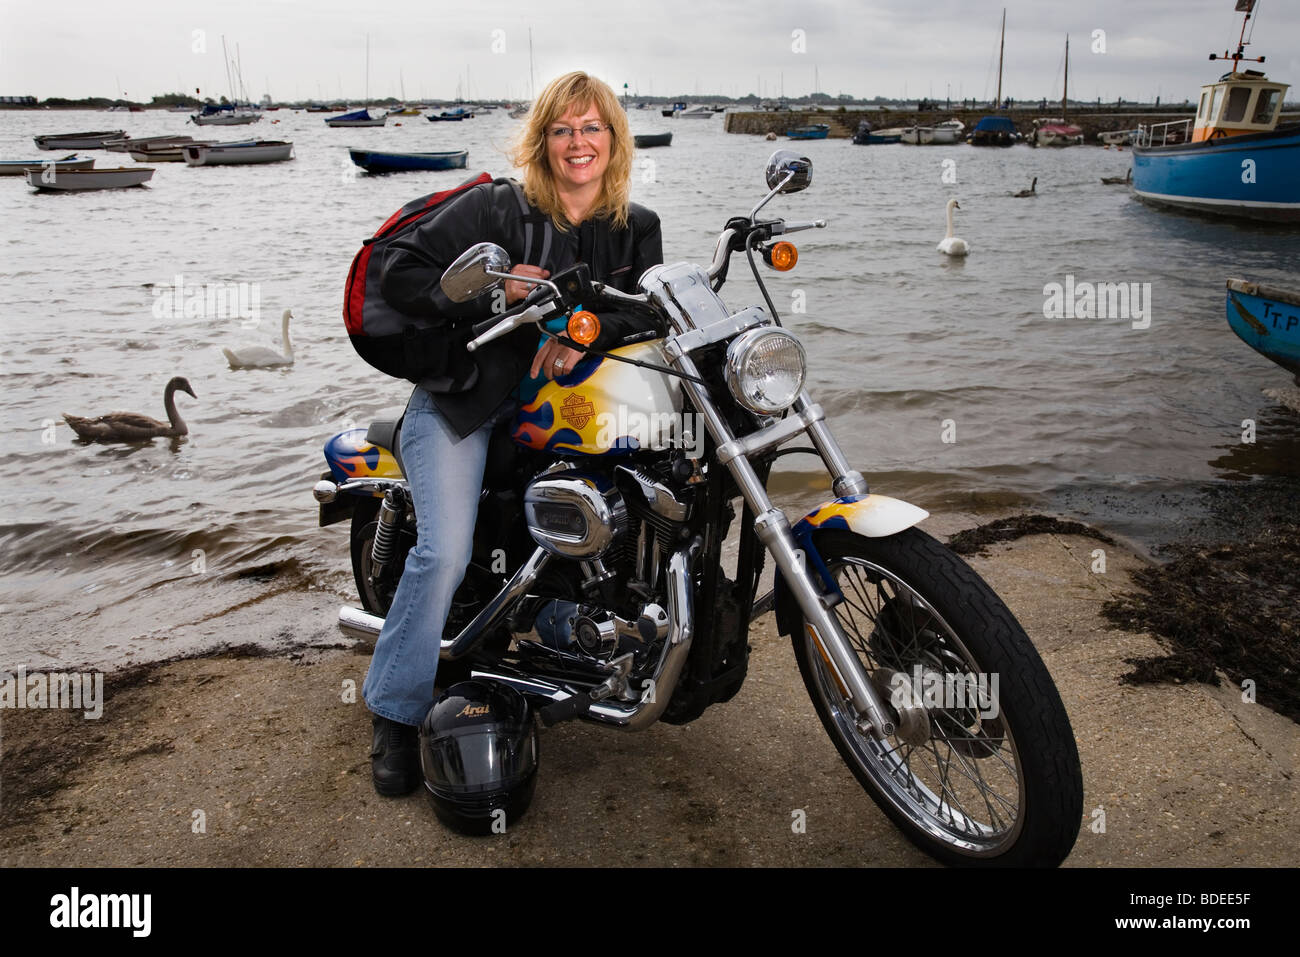 woman motorcyclist with her Harley Davidson bike - Stock Image